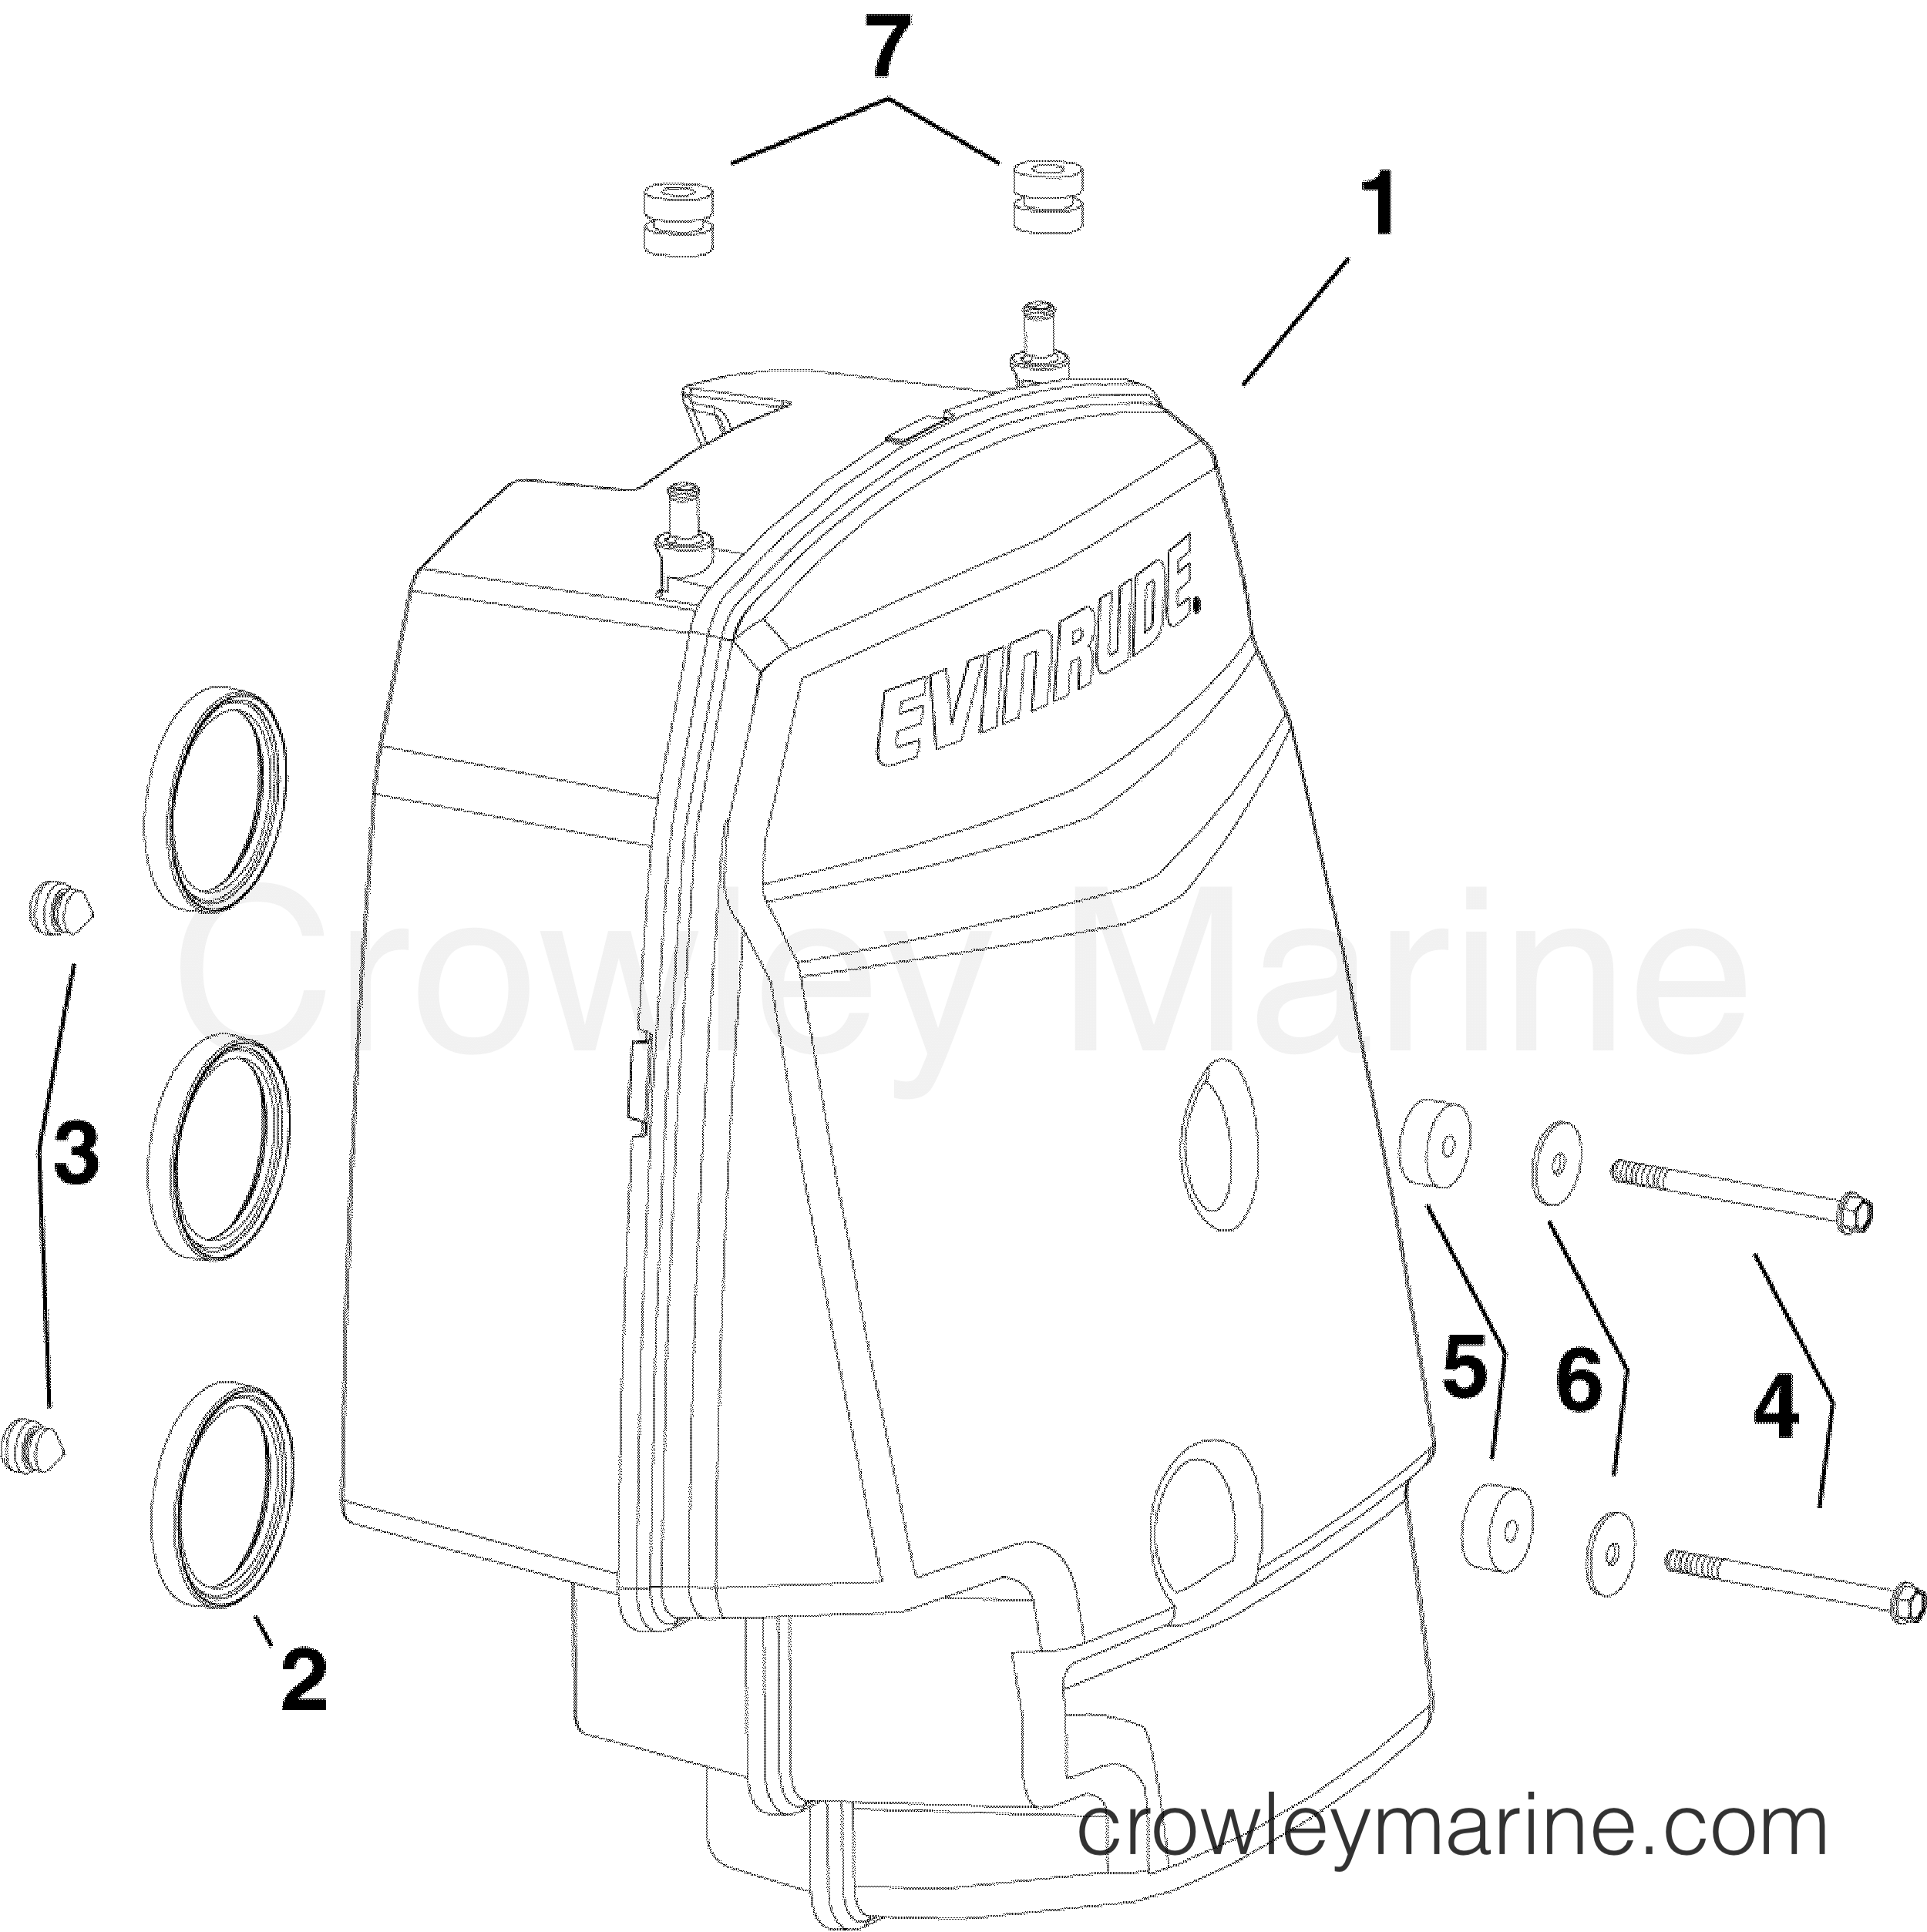 2010 Evinrude Outboards 250 - DE250CXISF - AIR SILENCER section